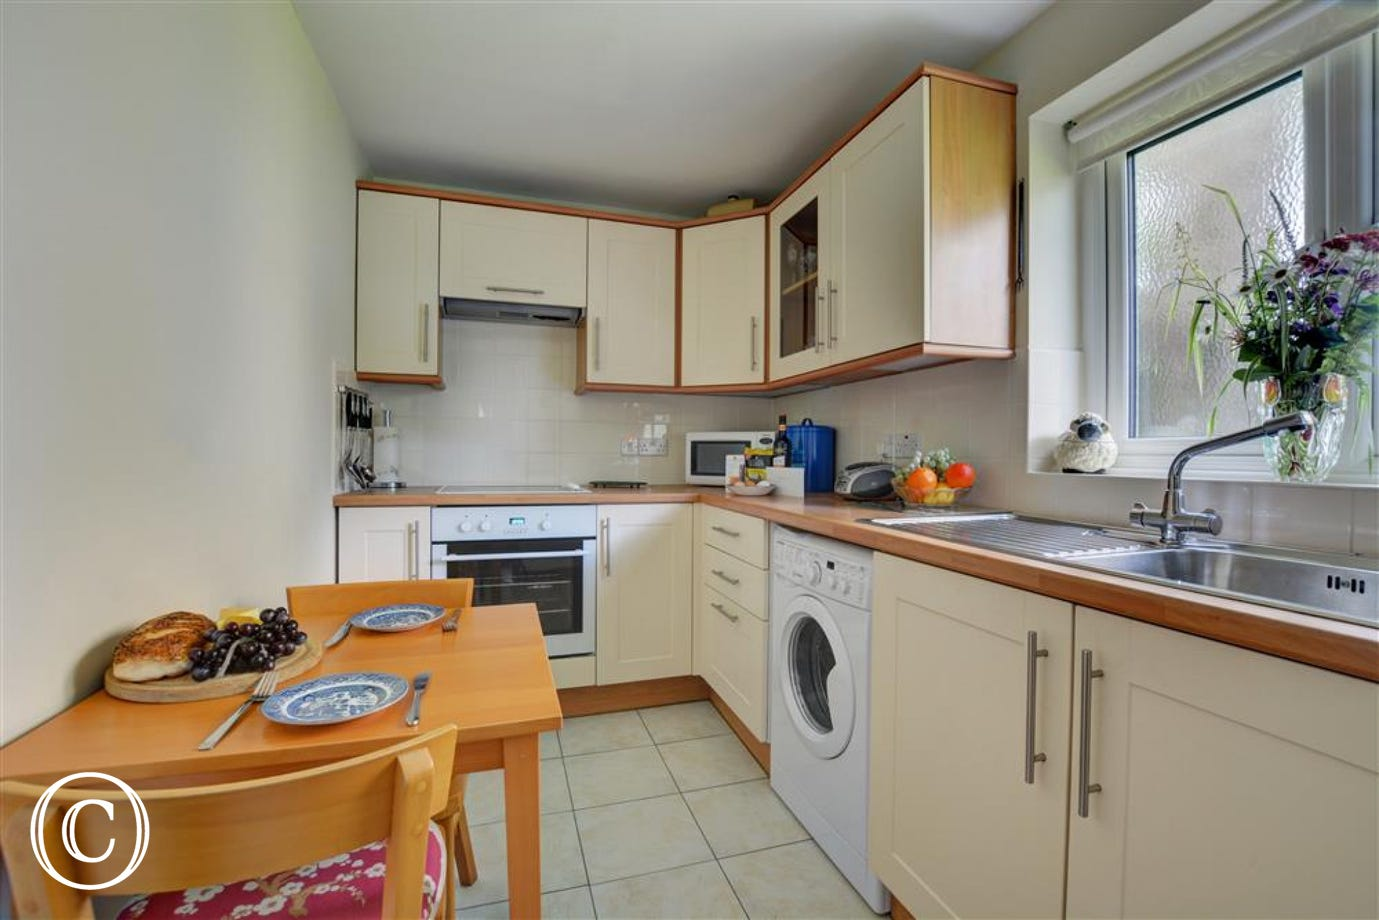 The well equipped kitchen with dining area